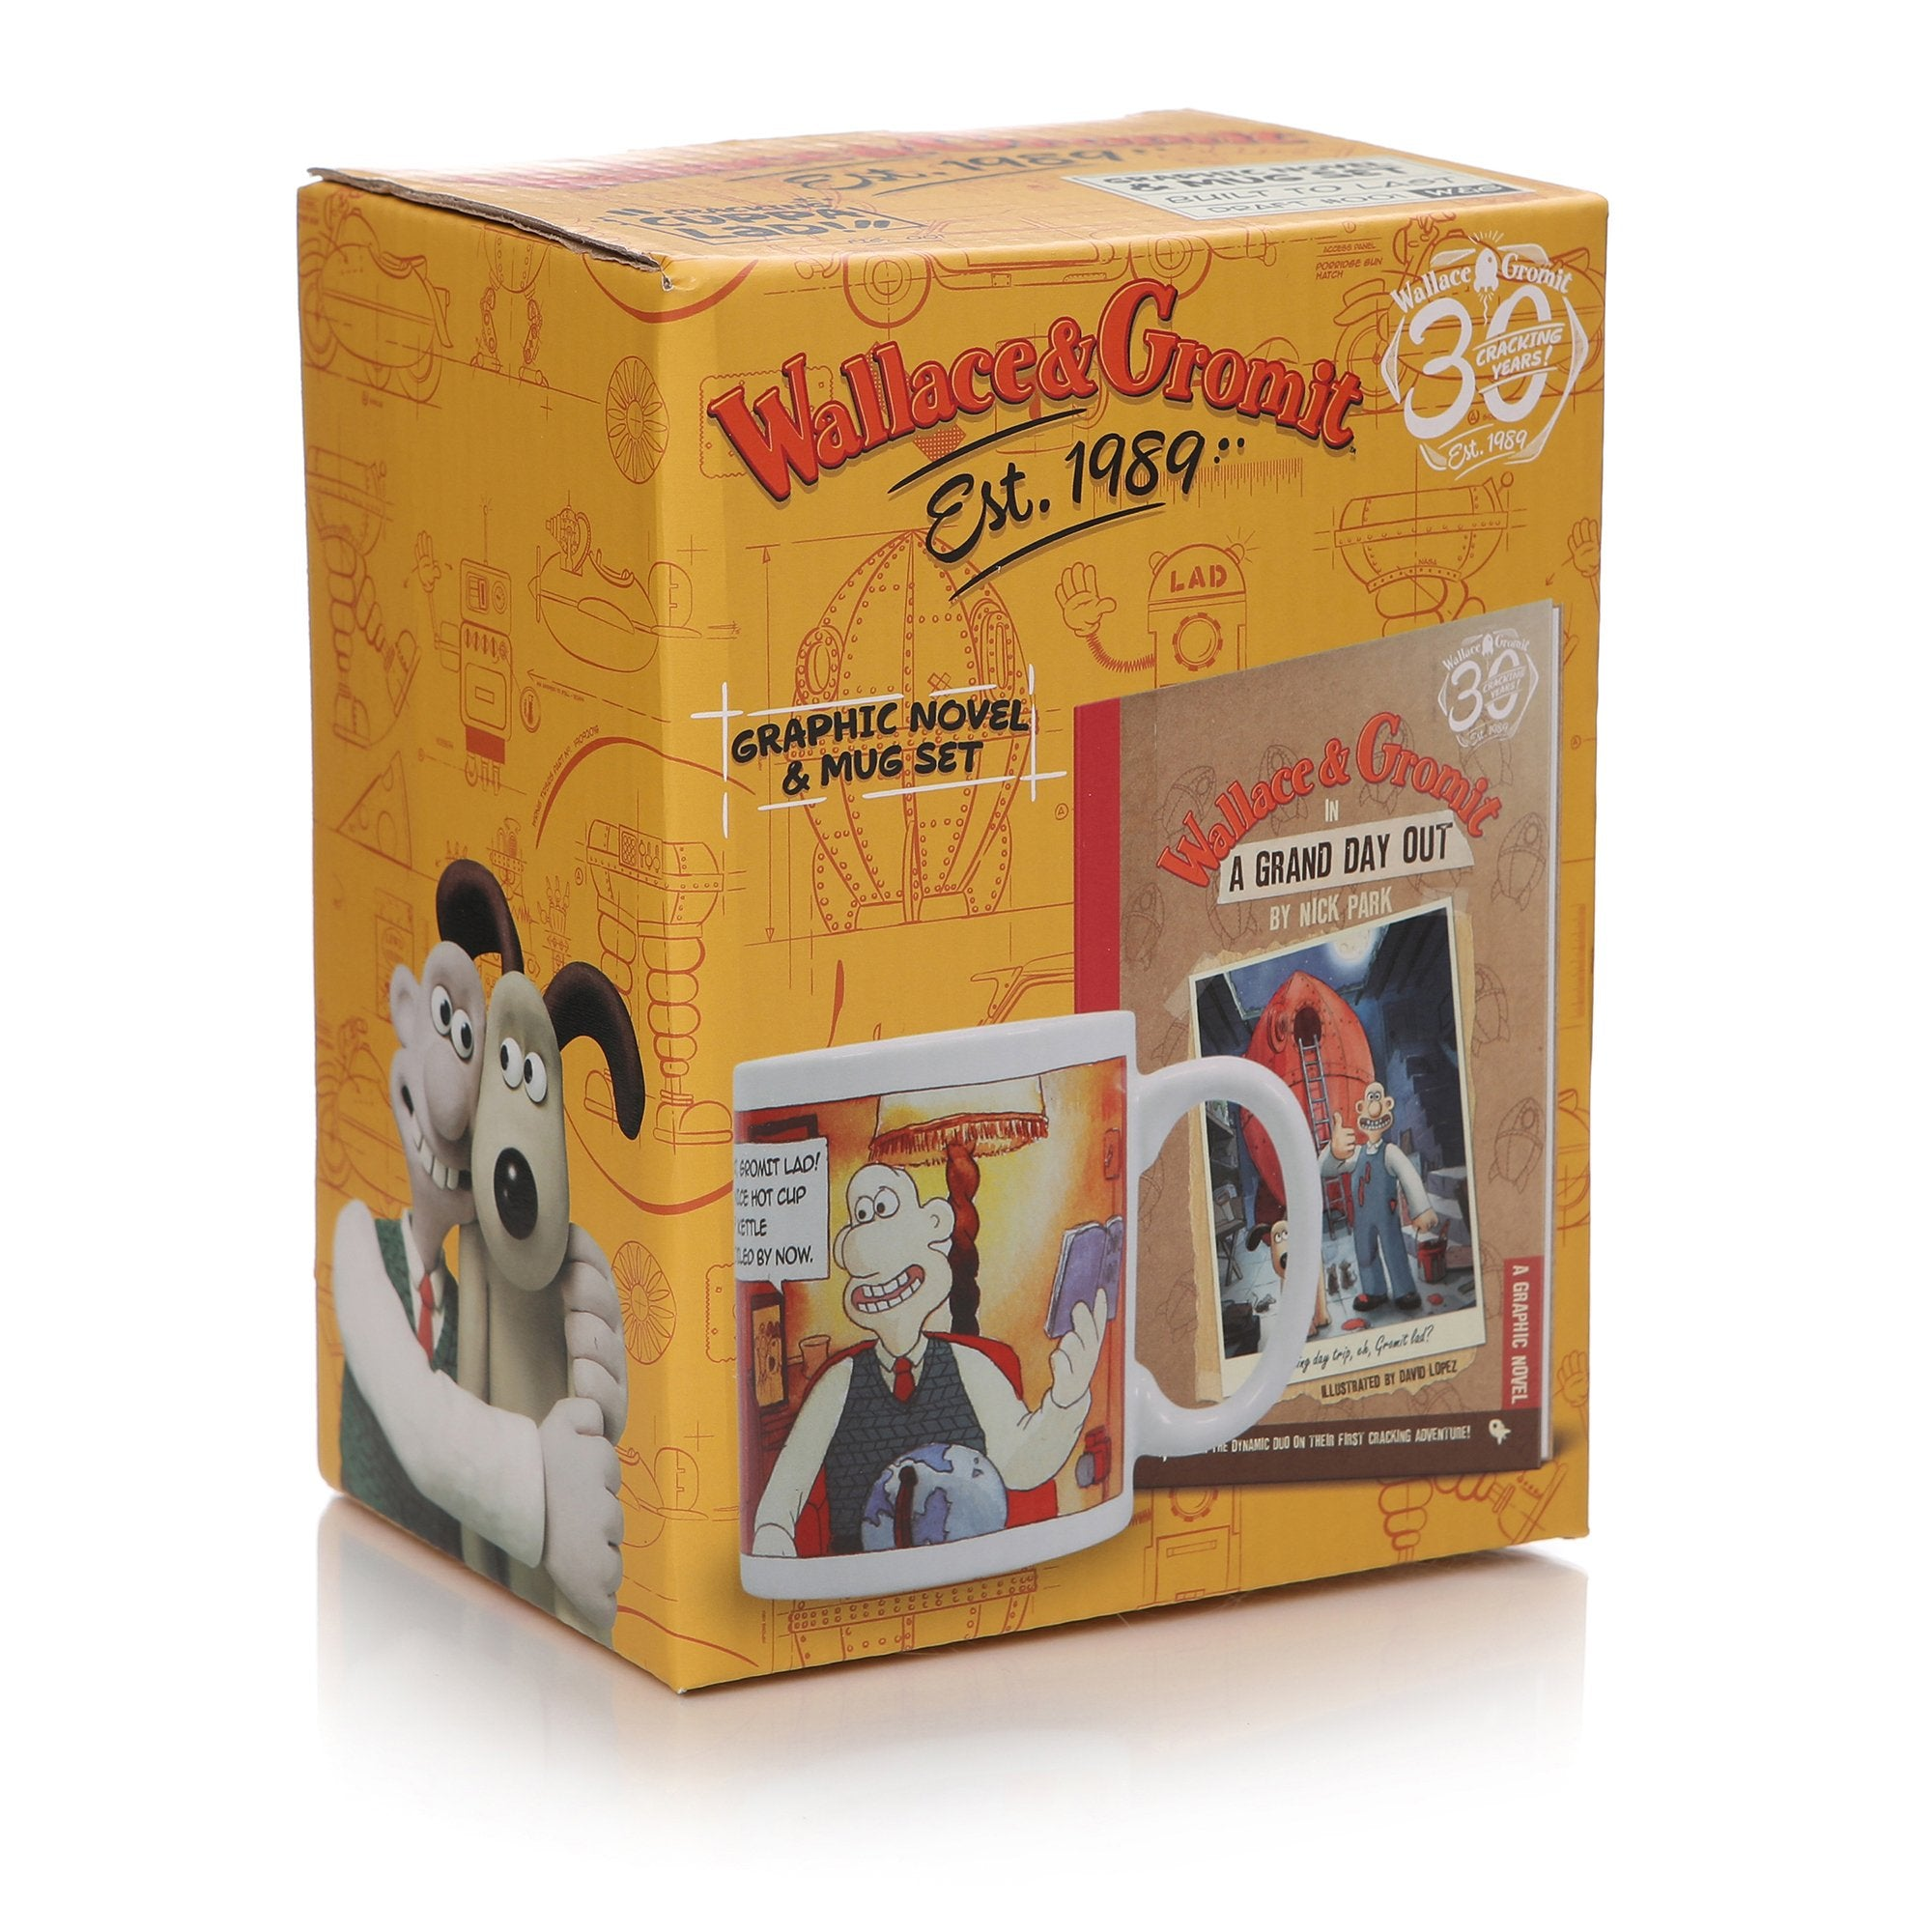 Wallace & Gromit Book & Mug Giftset - A Grand Day Out - Half Moon Bay US